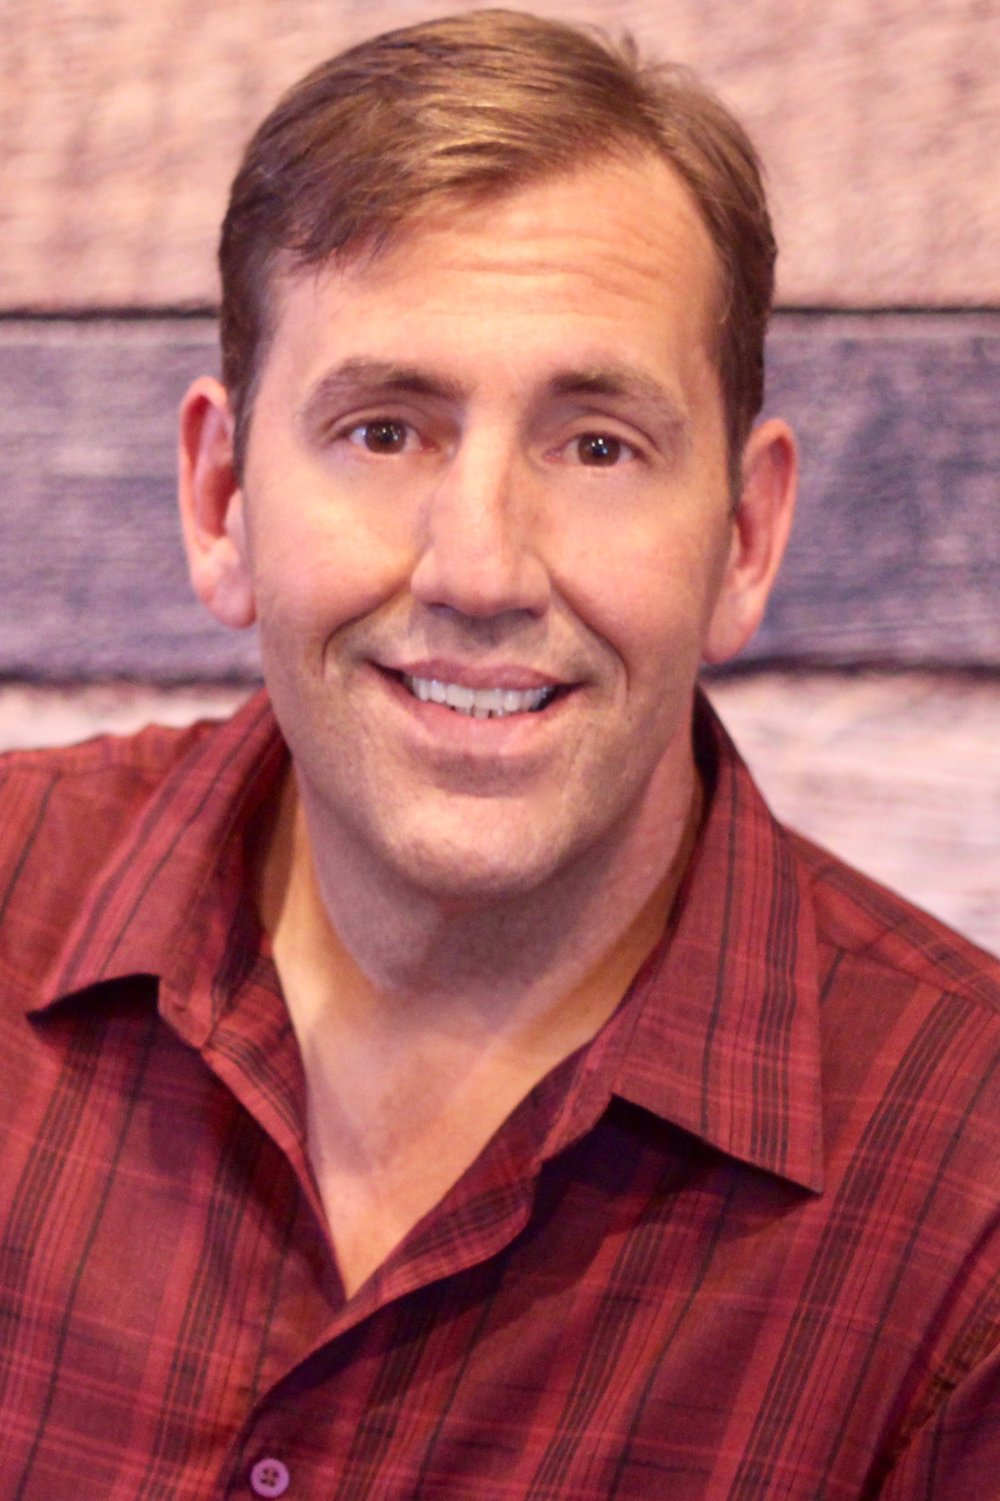 PASTOR JASON ZULLO   Pastor Jason Zullo is the Senior Pastor at East Valley. Each week he teaches through the Bible, verse by verse, and applies it to our lives.  619-672-4919  jasonzullo8@gmail.com